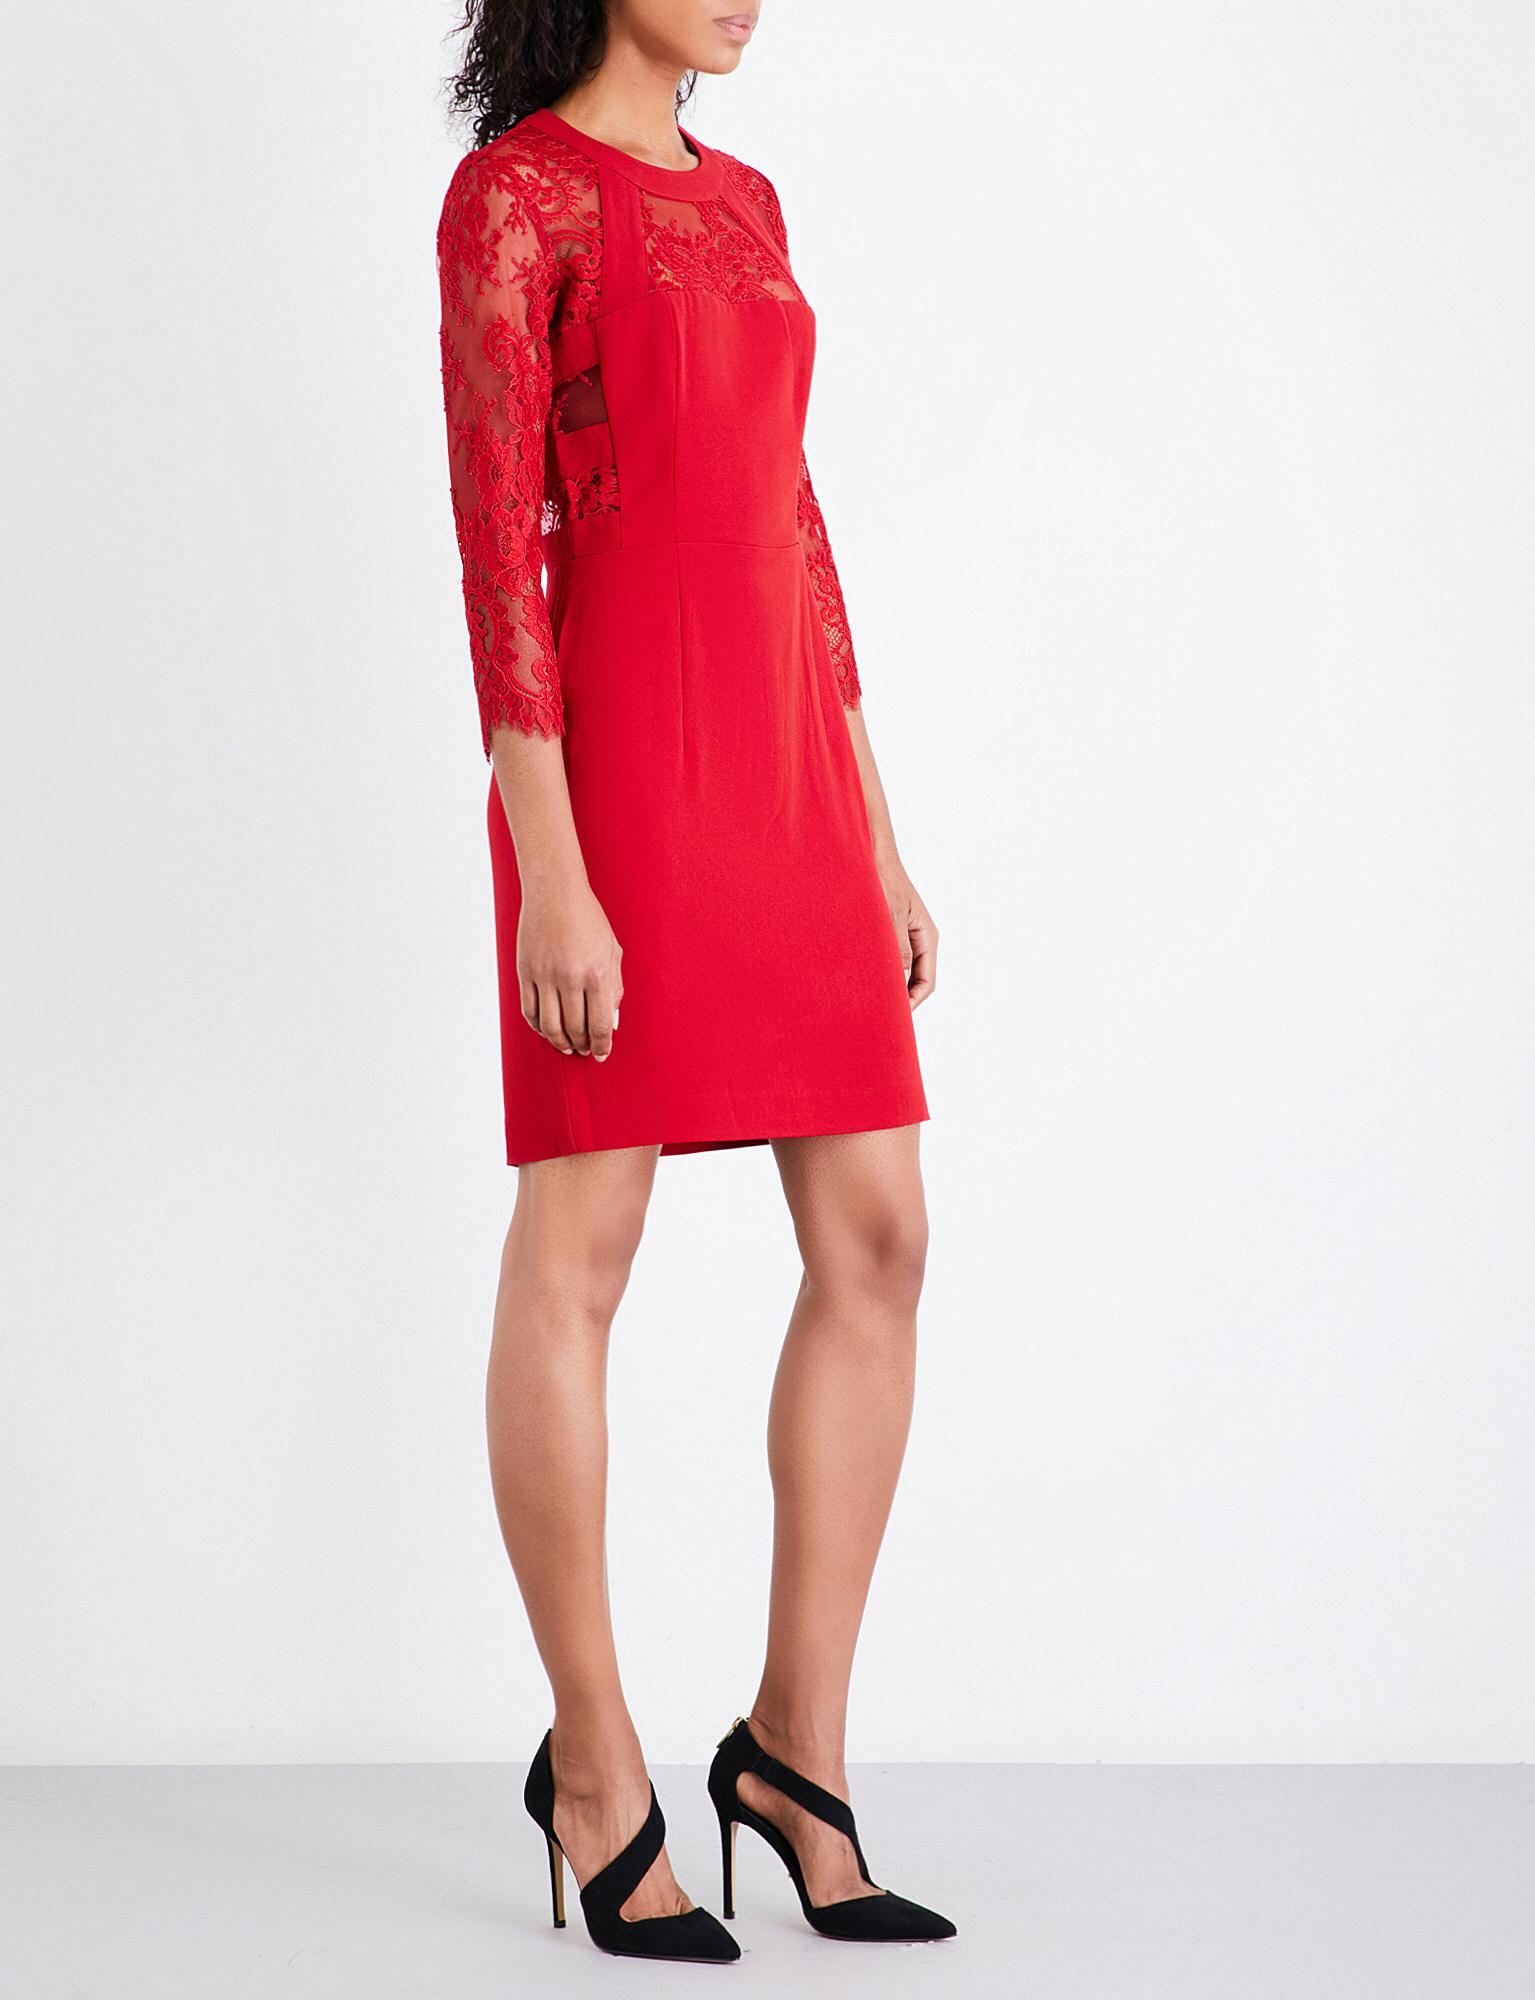 83462f8970a The Kooples Floral-lace Crepe Dress in Red - Lyst